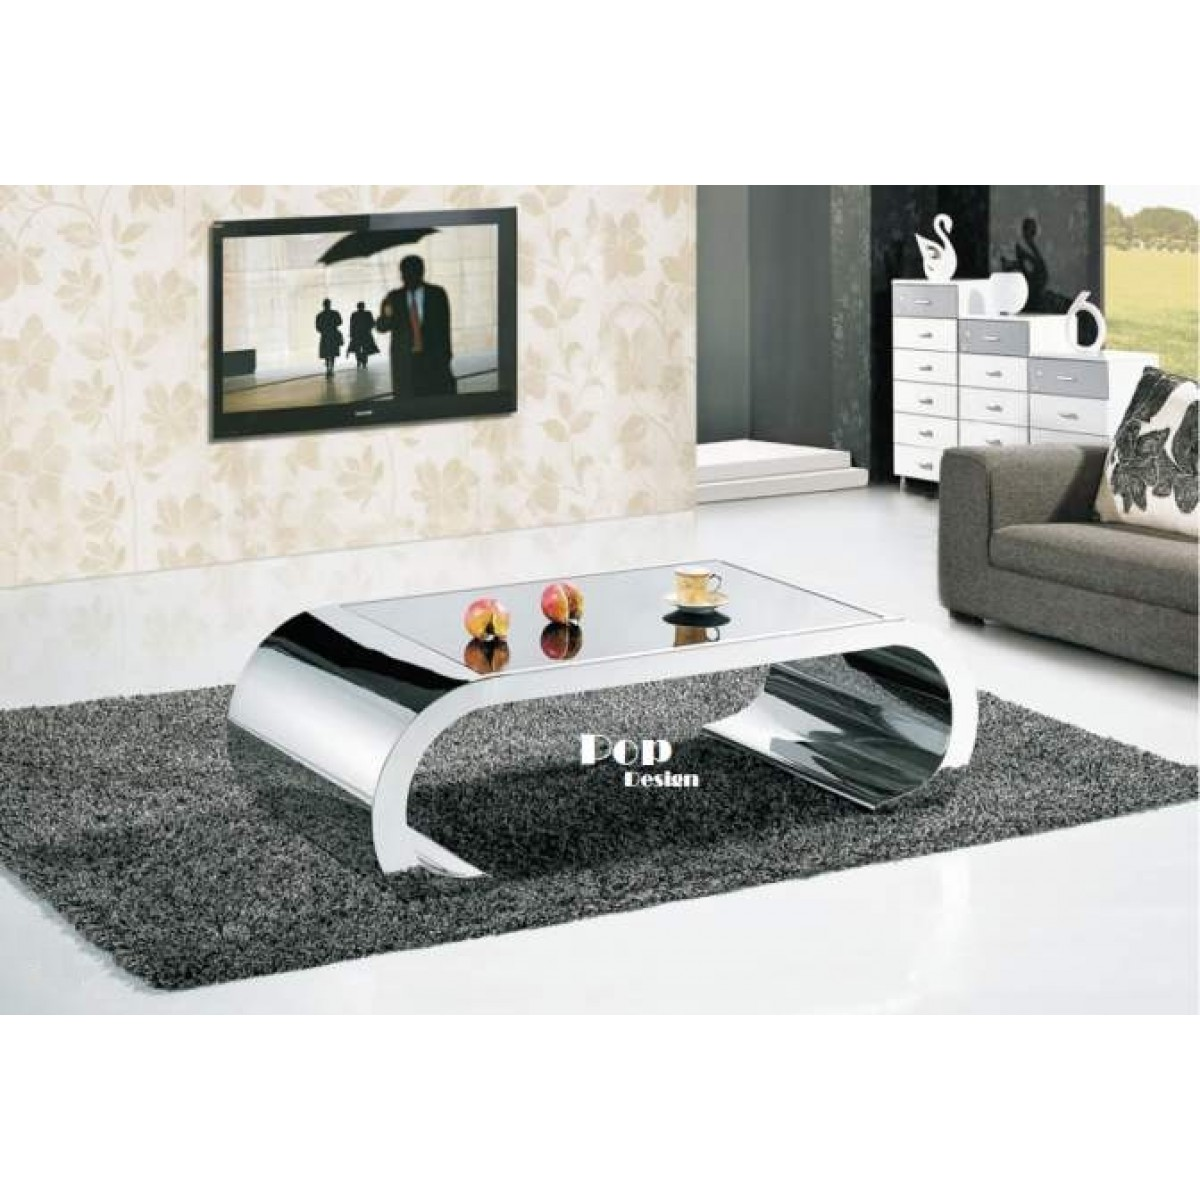 Table basse inox effet miroir Daphne | pop-design.fr